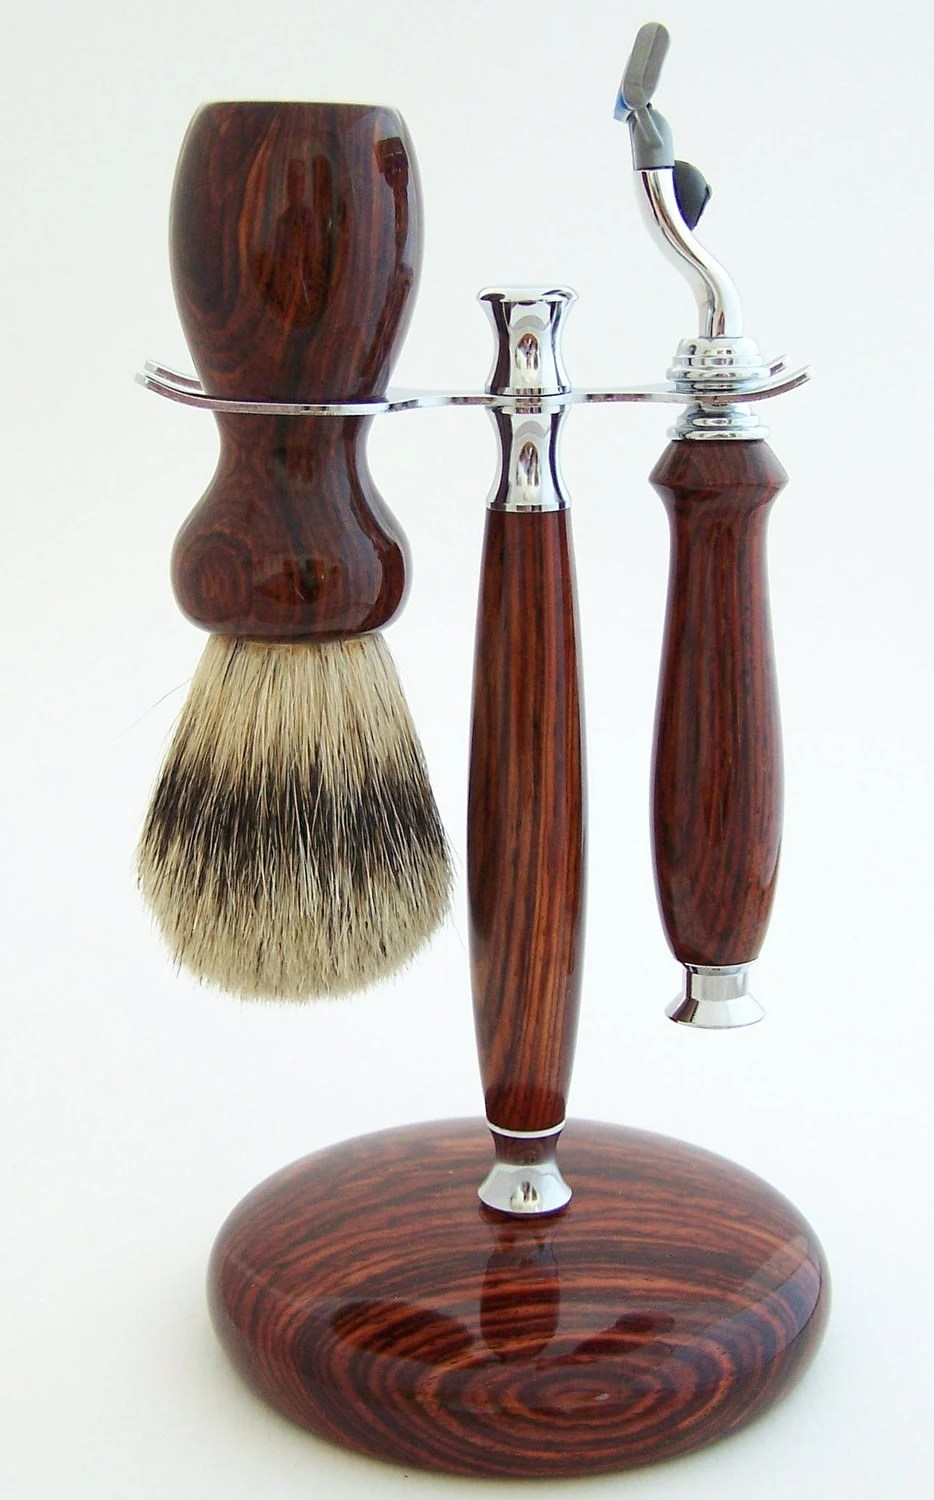 Cocobolo Wood 24mm Silvertip Badger Brush, Mach 3 Razor and Stand Shaving Set (Handmade in USA) - PCwoodcraftandPens